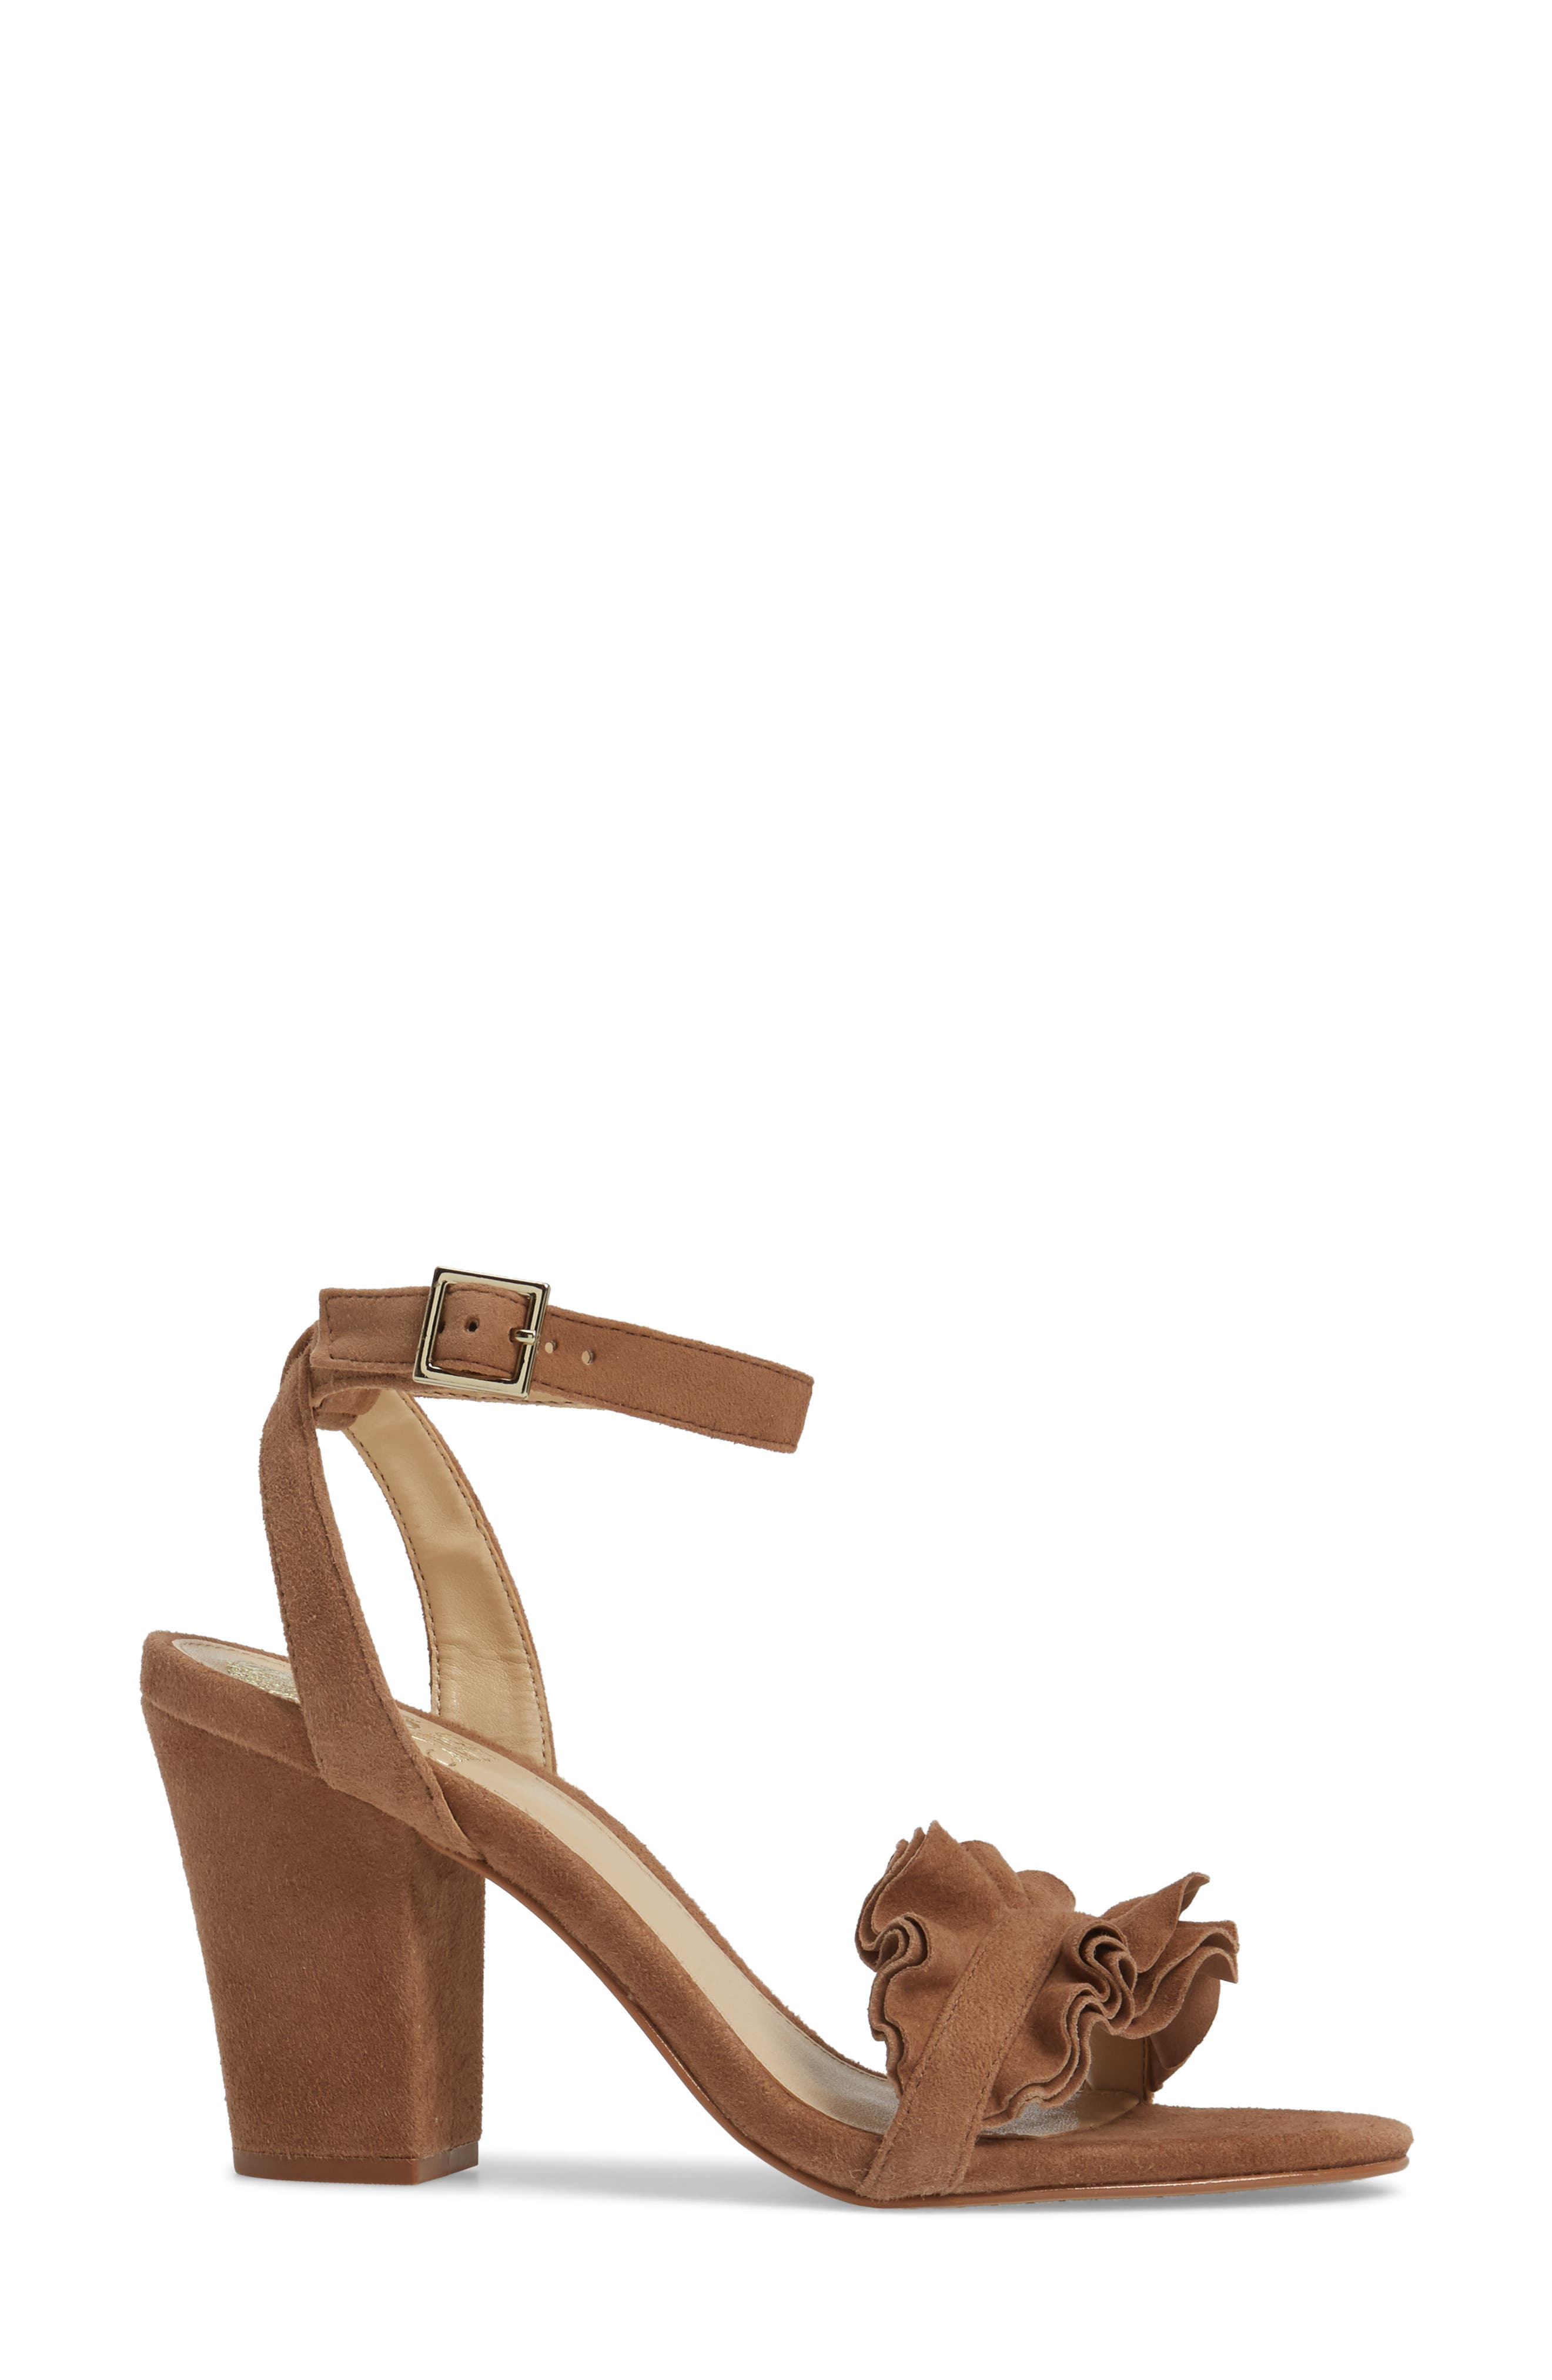 Vinta Sandal,                             Alternate thumbnail 3, color,                             Amendoa Suede